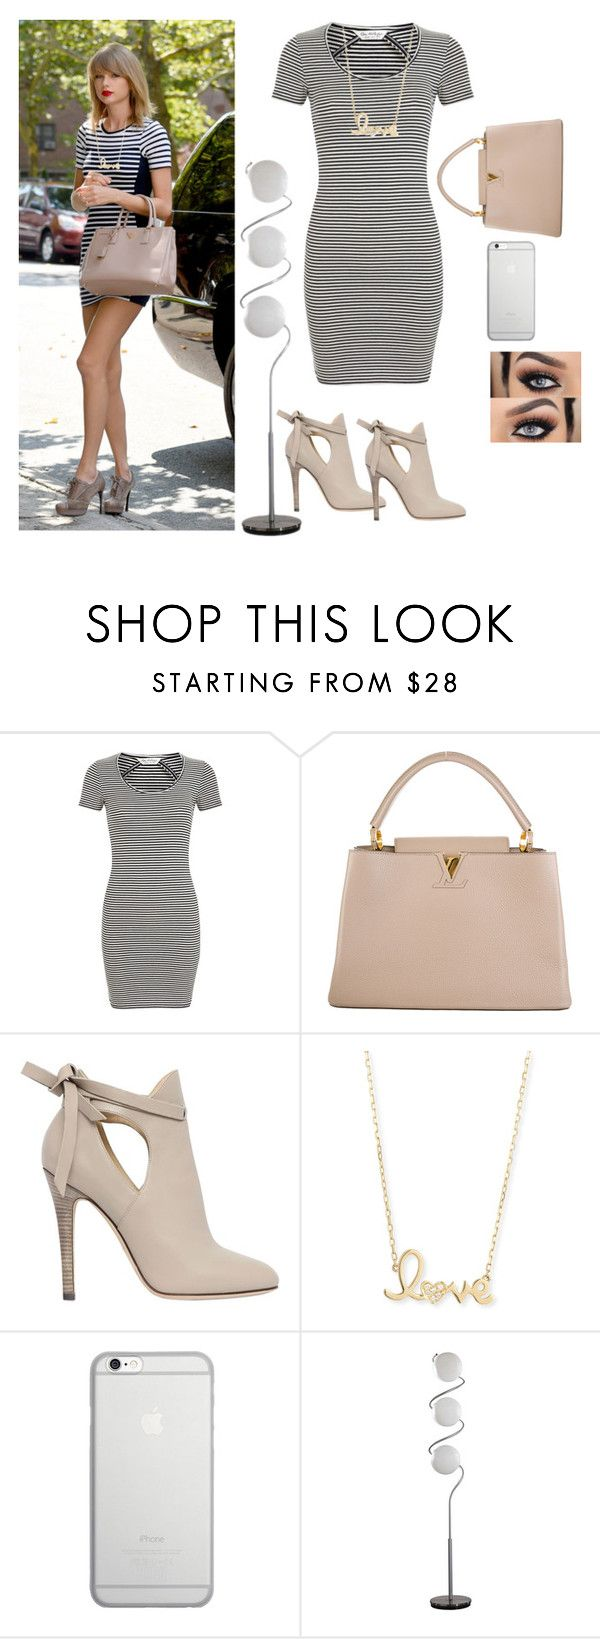 """""""My First Polyvore Outfit"""" by remooooo ❤ liked on Polyvore featuring Prada, Miss Selfridge, Louis Vuitton, Jimmy Choo, Sydney Evan and Native Union"""